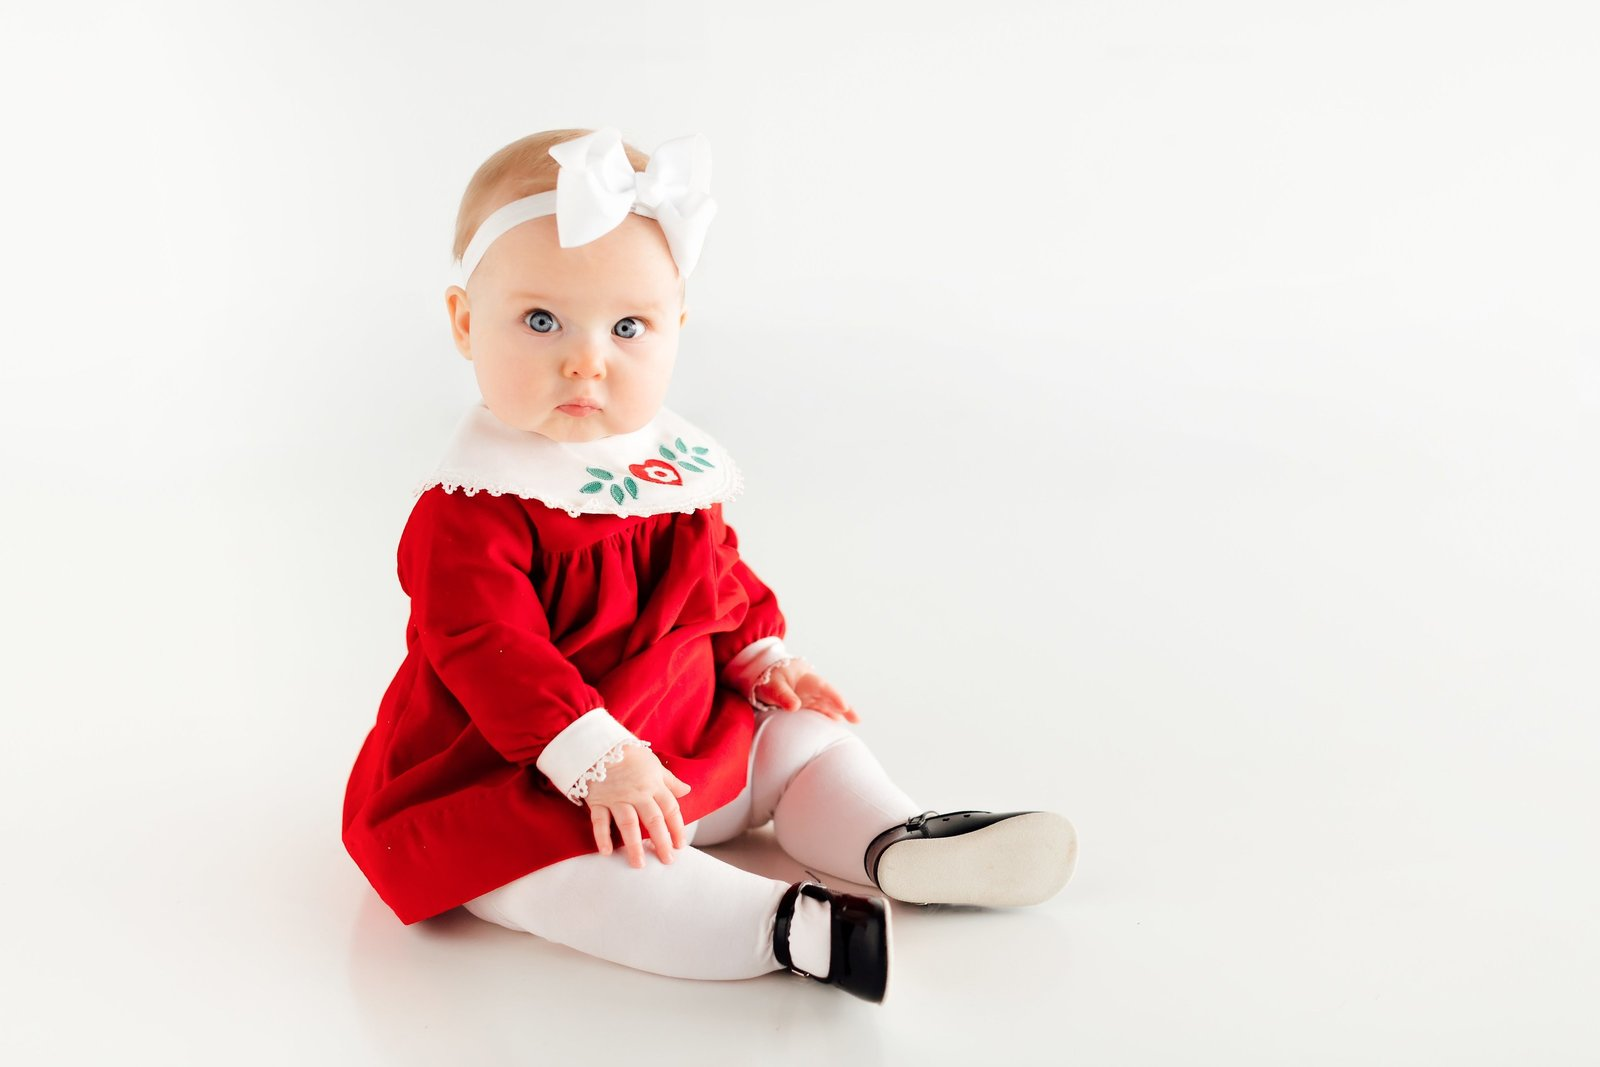 St_Louis_Baby_Photographer_Kelly_Laramore_Photography_142